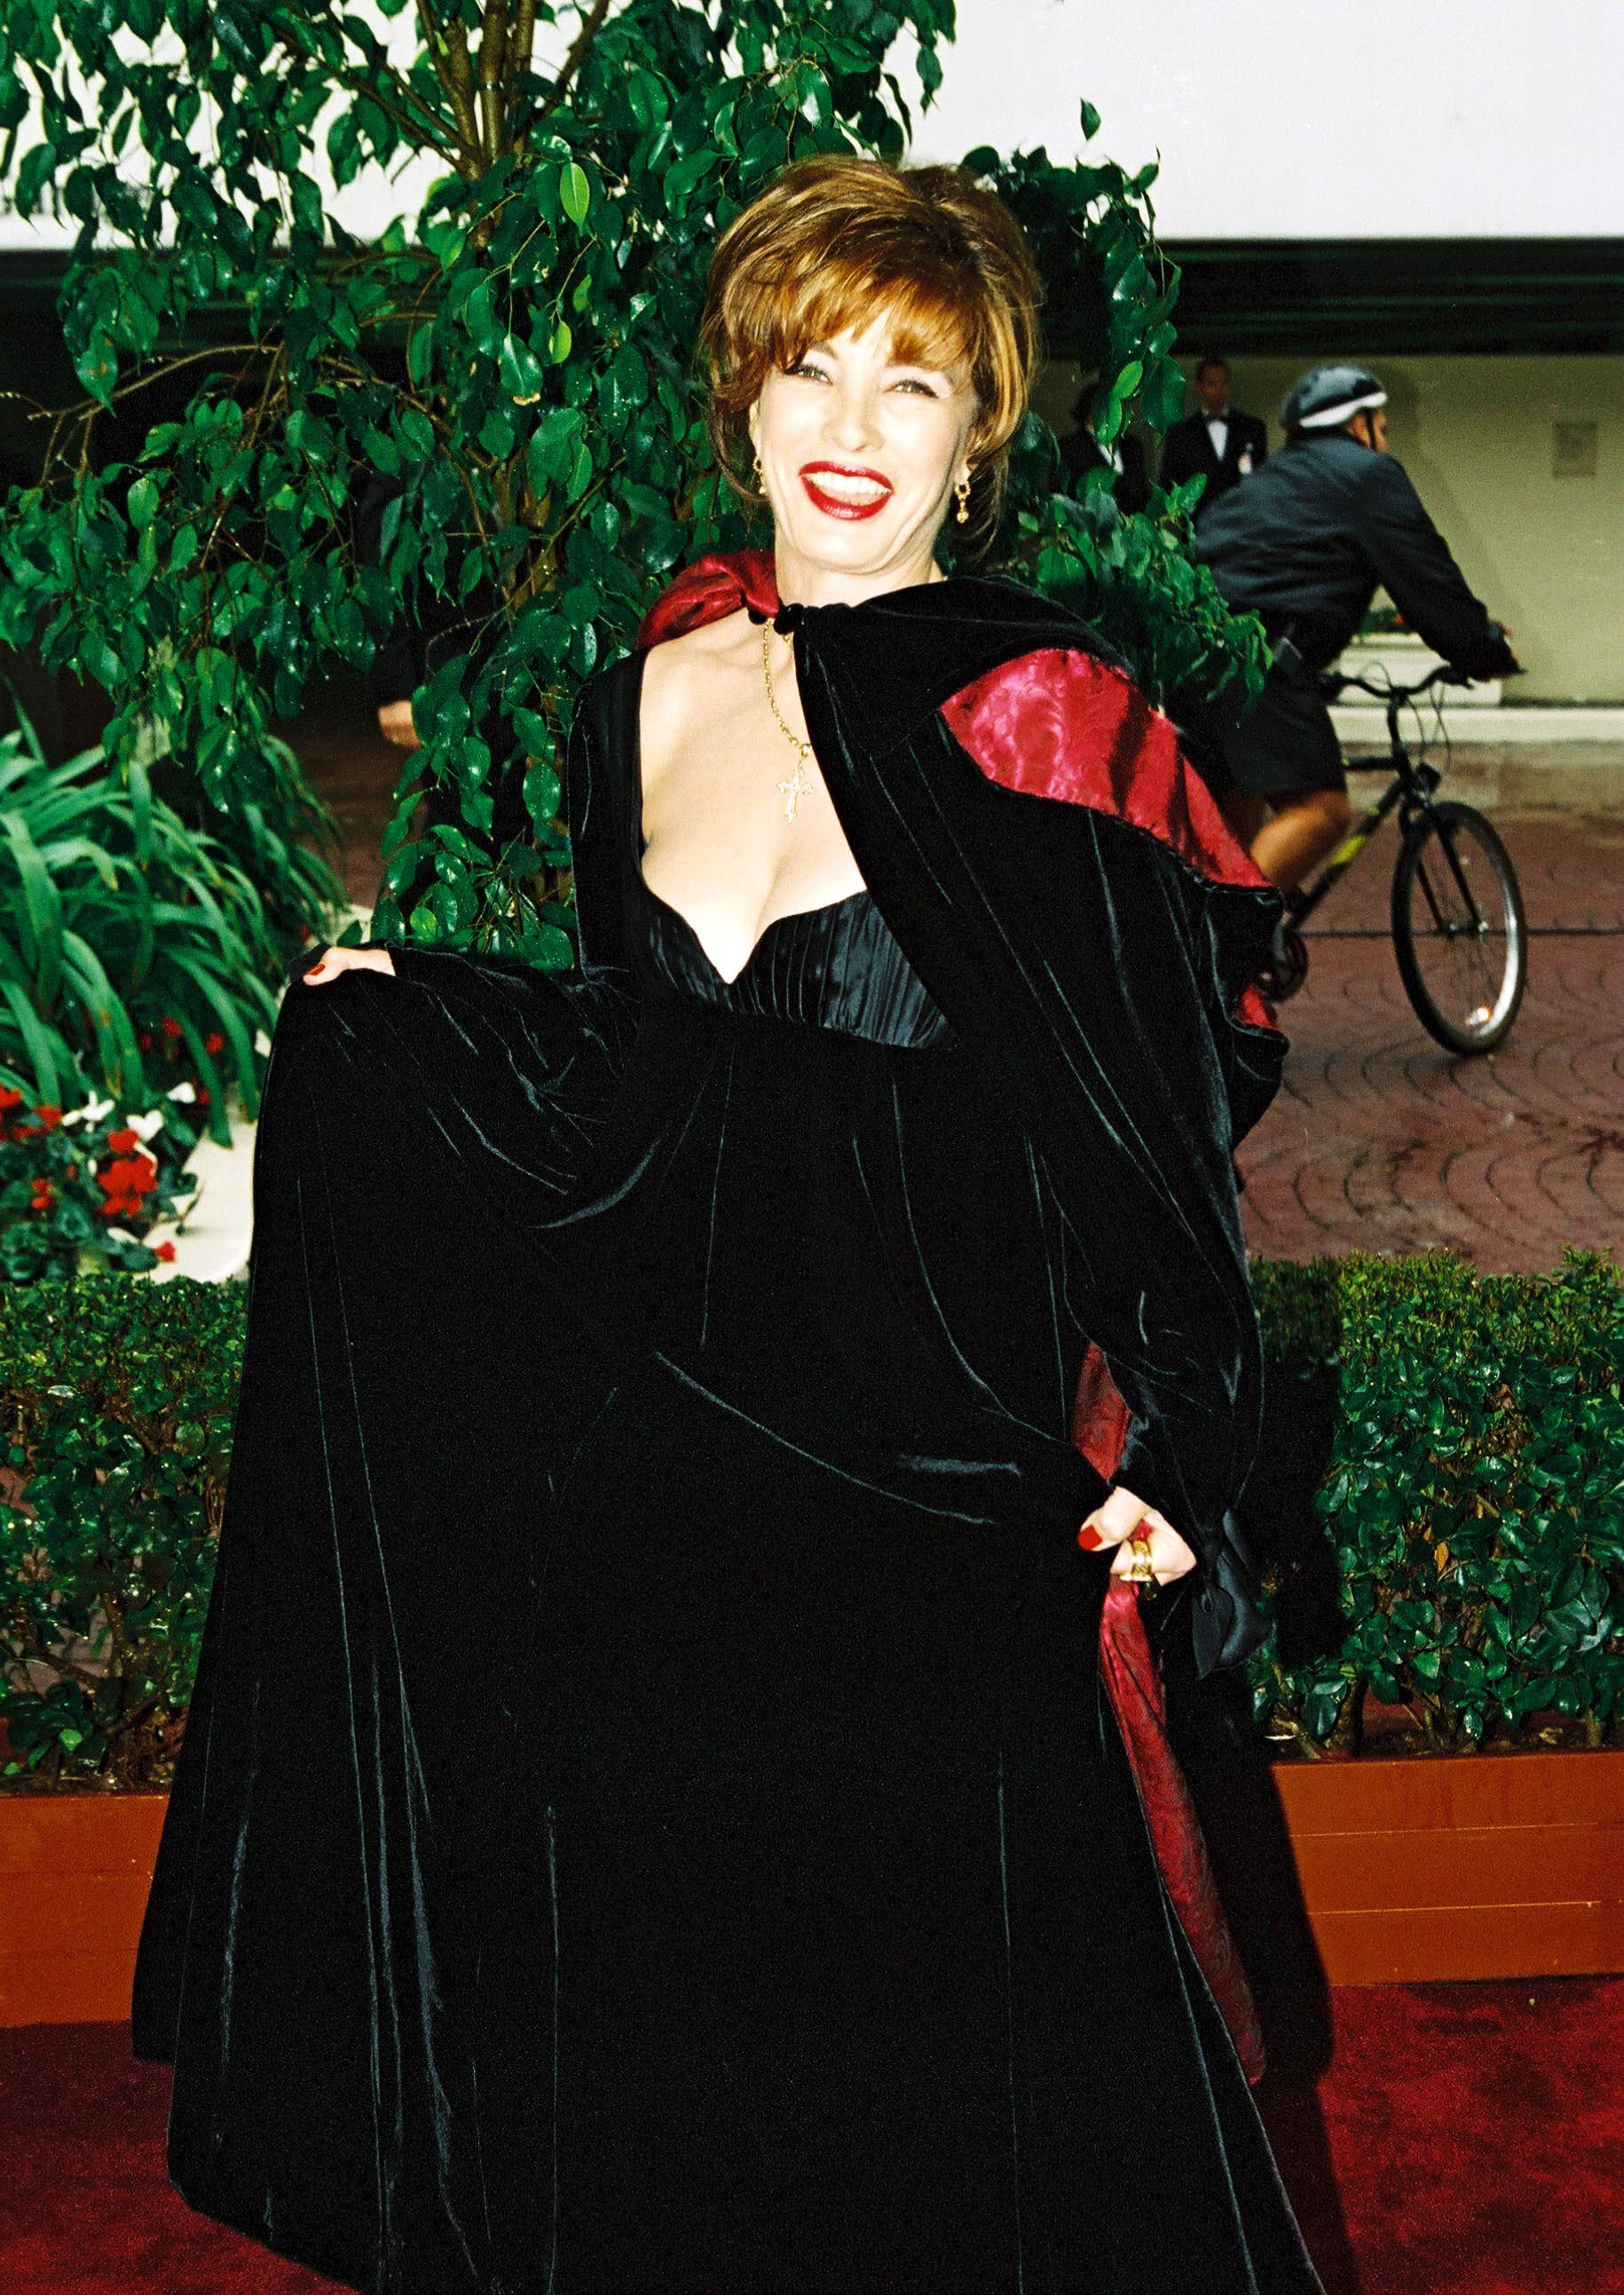 Anne ArcherArrivals at the 53rd Annual Golden Globes - 21 Jan 1996 January 21, 1996 Beverly Hills, CA Anne Archer Red Carpet Arrivals at the 1996 Golden Globe Awards held at the Beverly Hilton. Photo by Berliner Studio ® BEImages